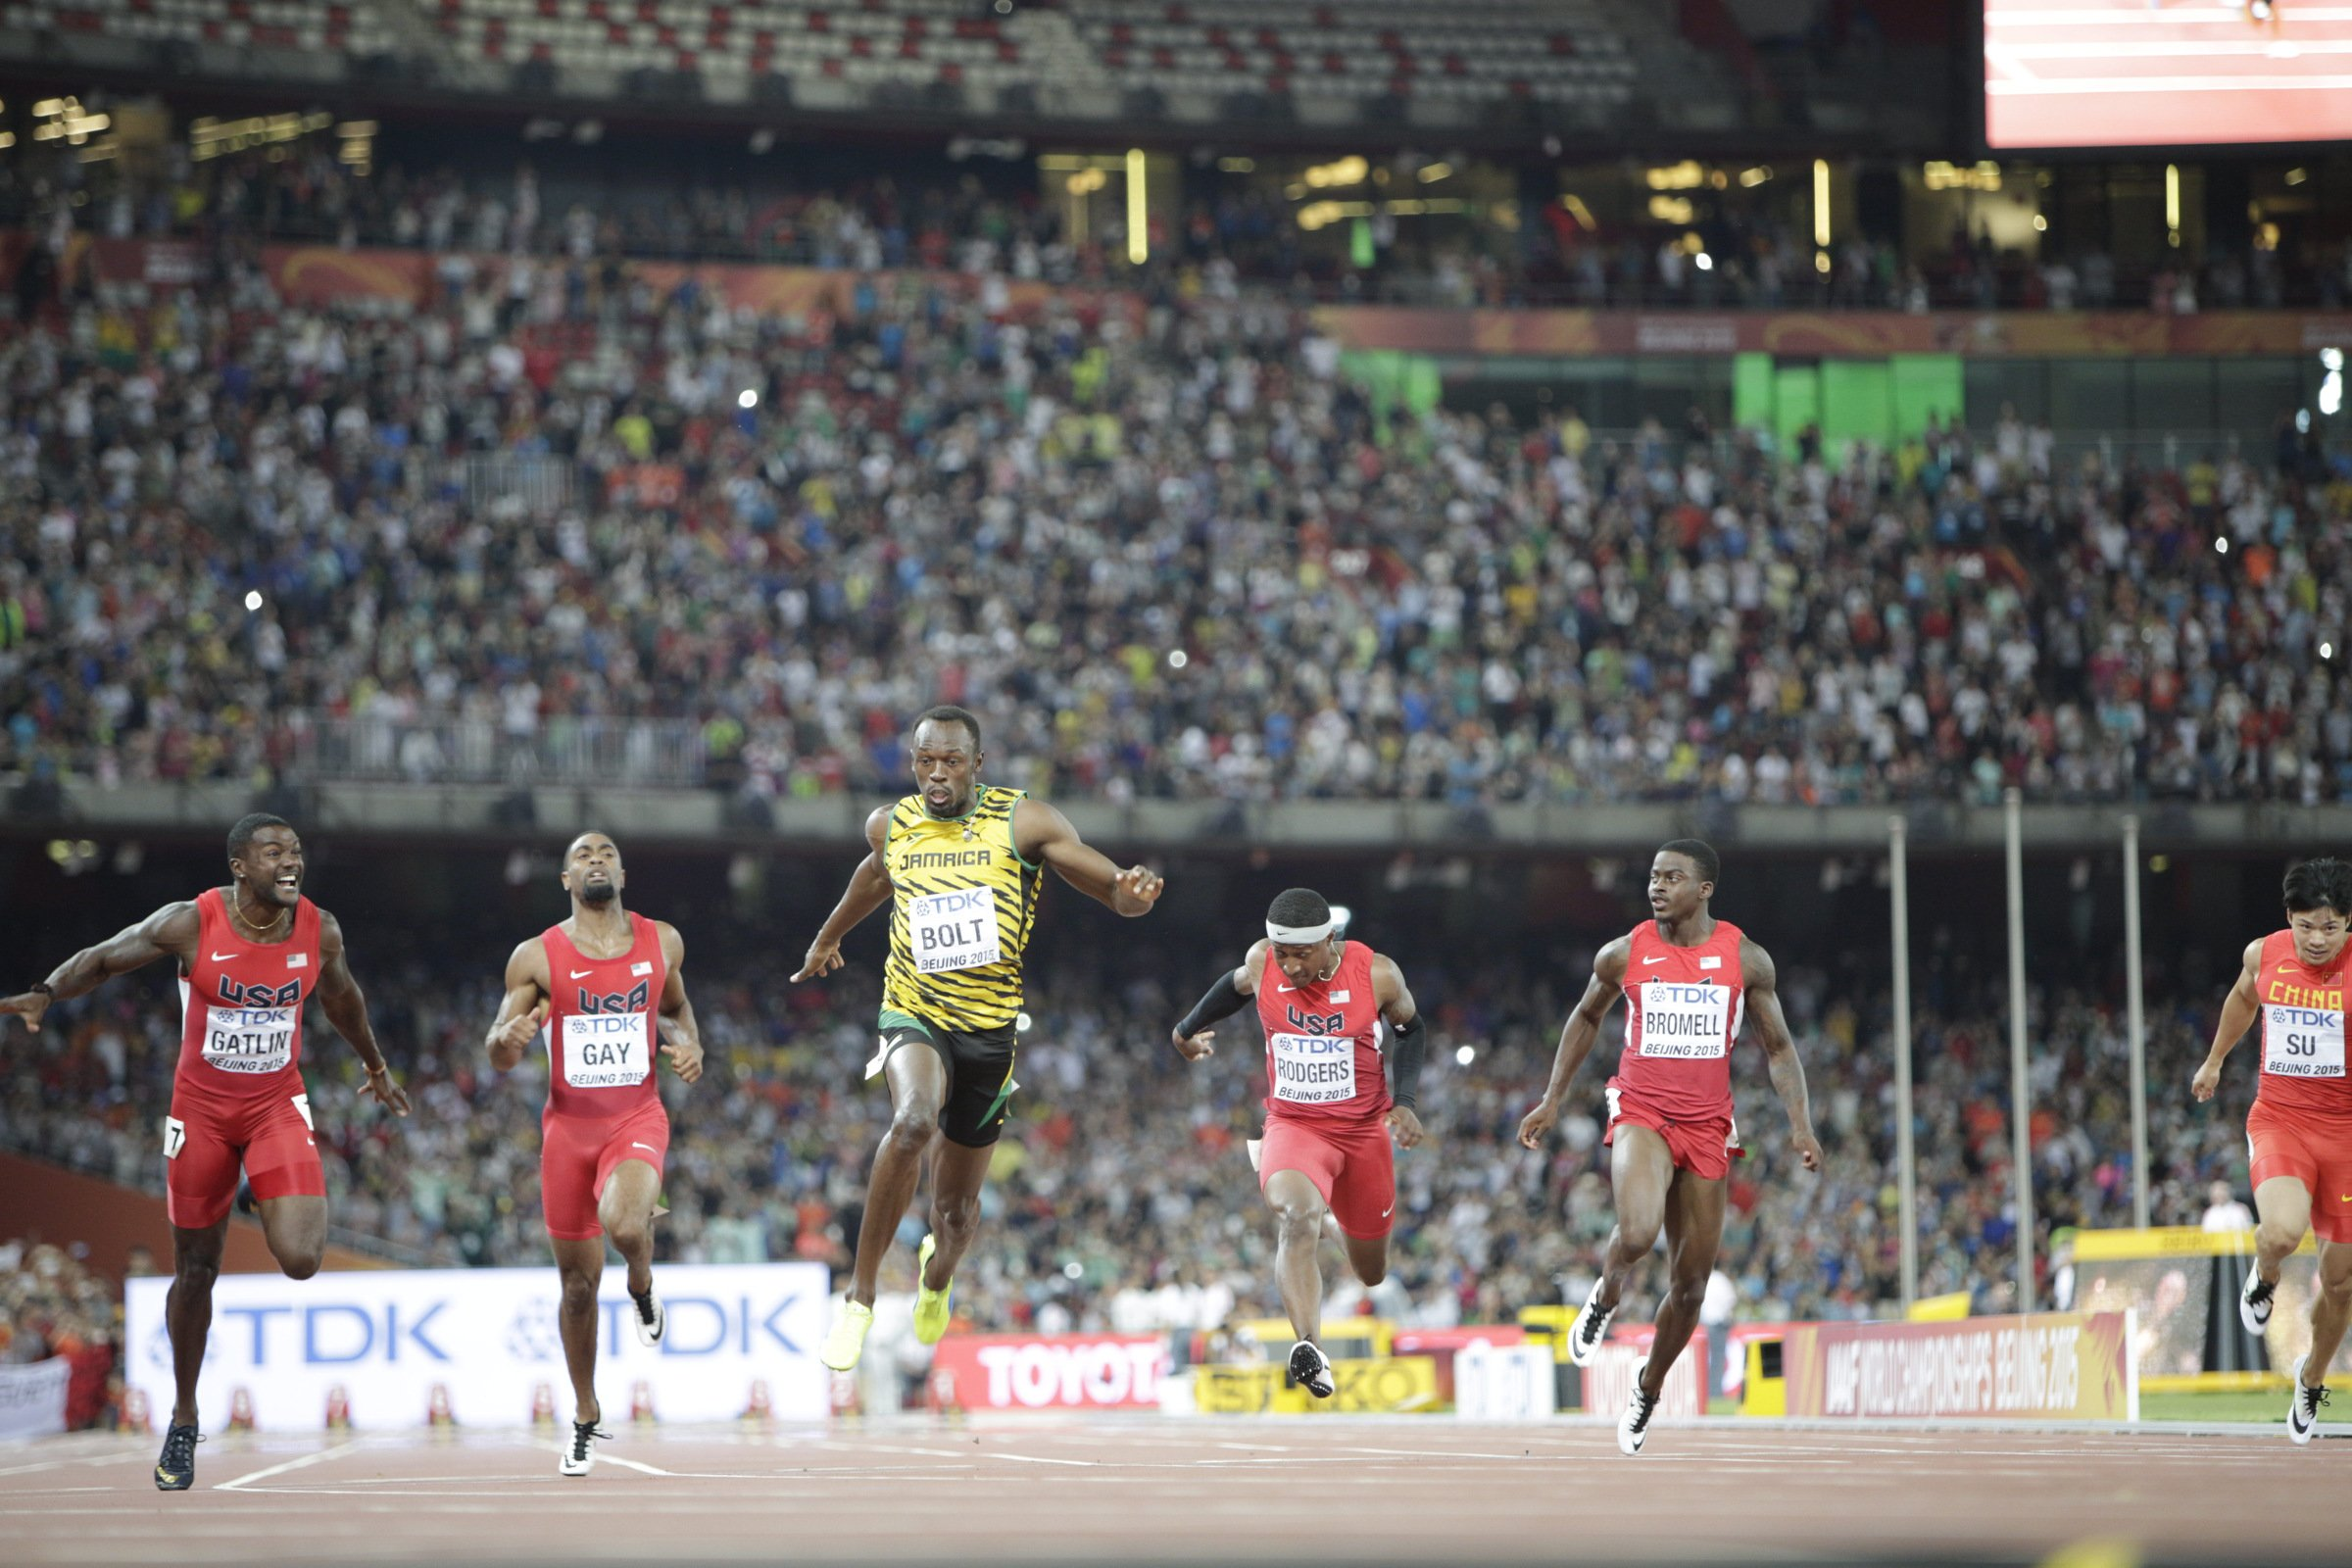 Usain Bolt (JAM) ran his fastest time of the year to fend off Justin Gatlin (USA) and other Americans in the world championship 100-meter final.